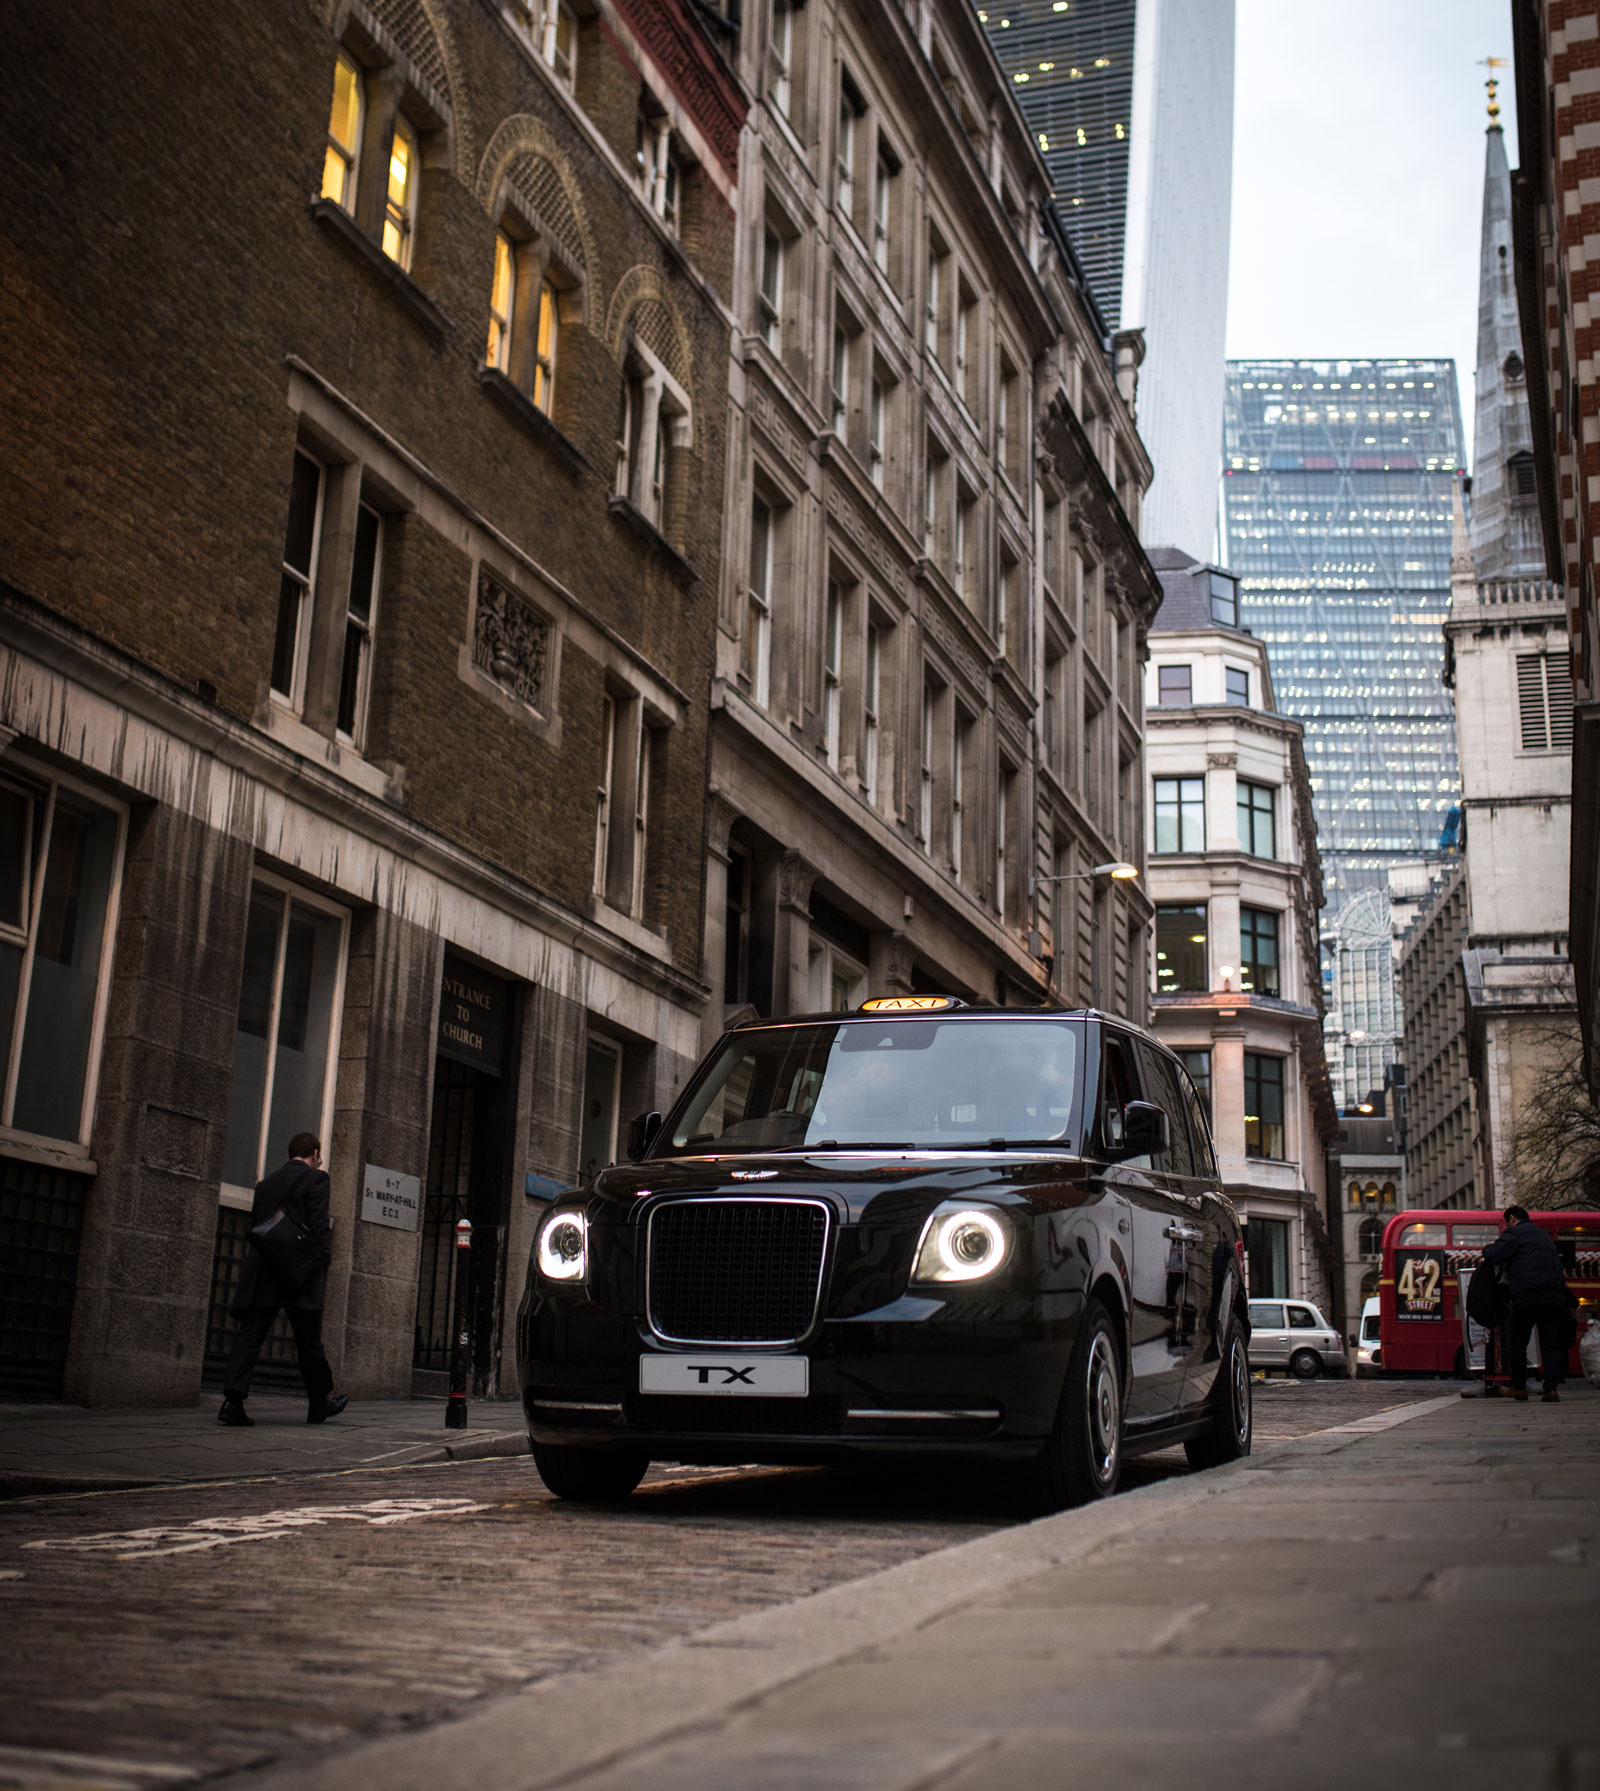 Taxi by Octopus - Electric Taxi Financing